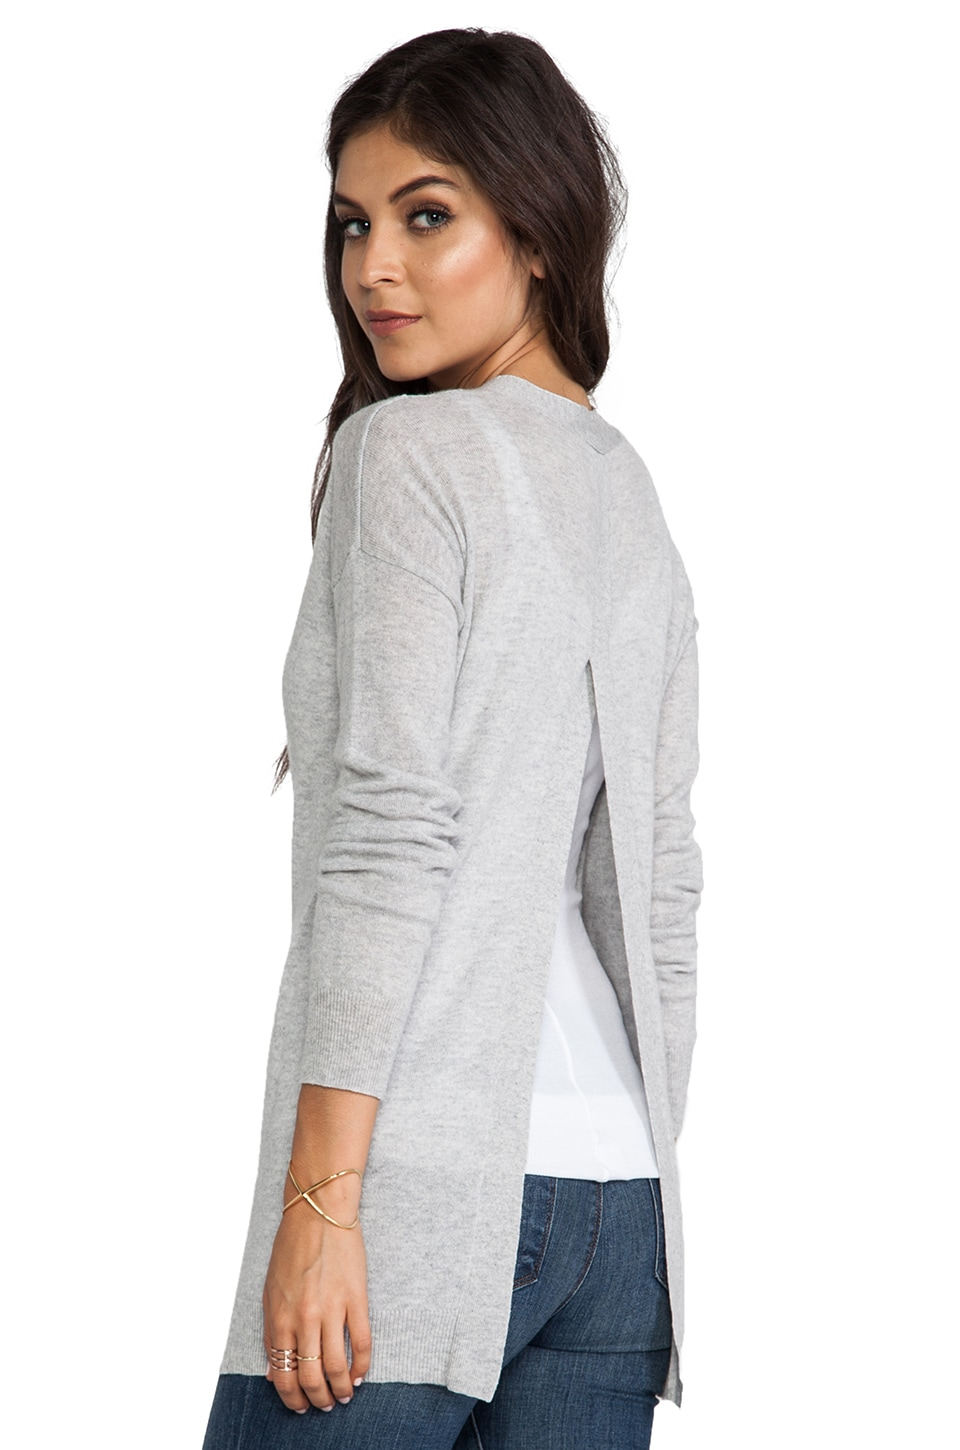 Autumn Cashmere Hi Lo Open Back Boyfriend Cardigan in Fog